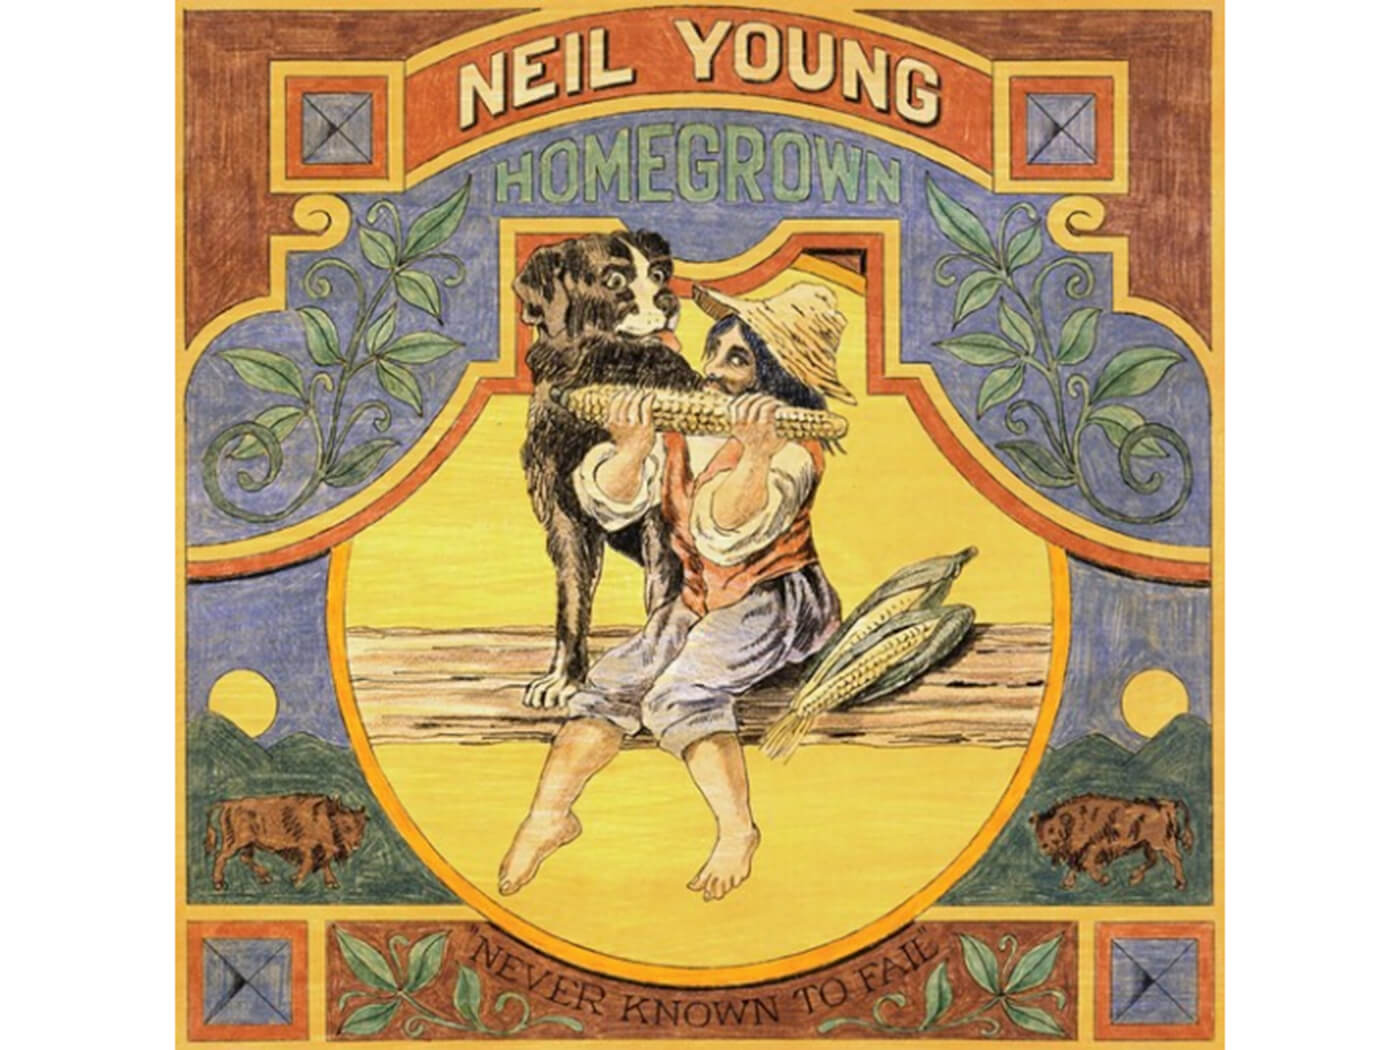 Neil Young's Homegrown confirmed for release on June 19